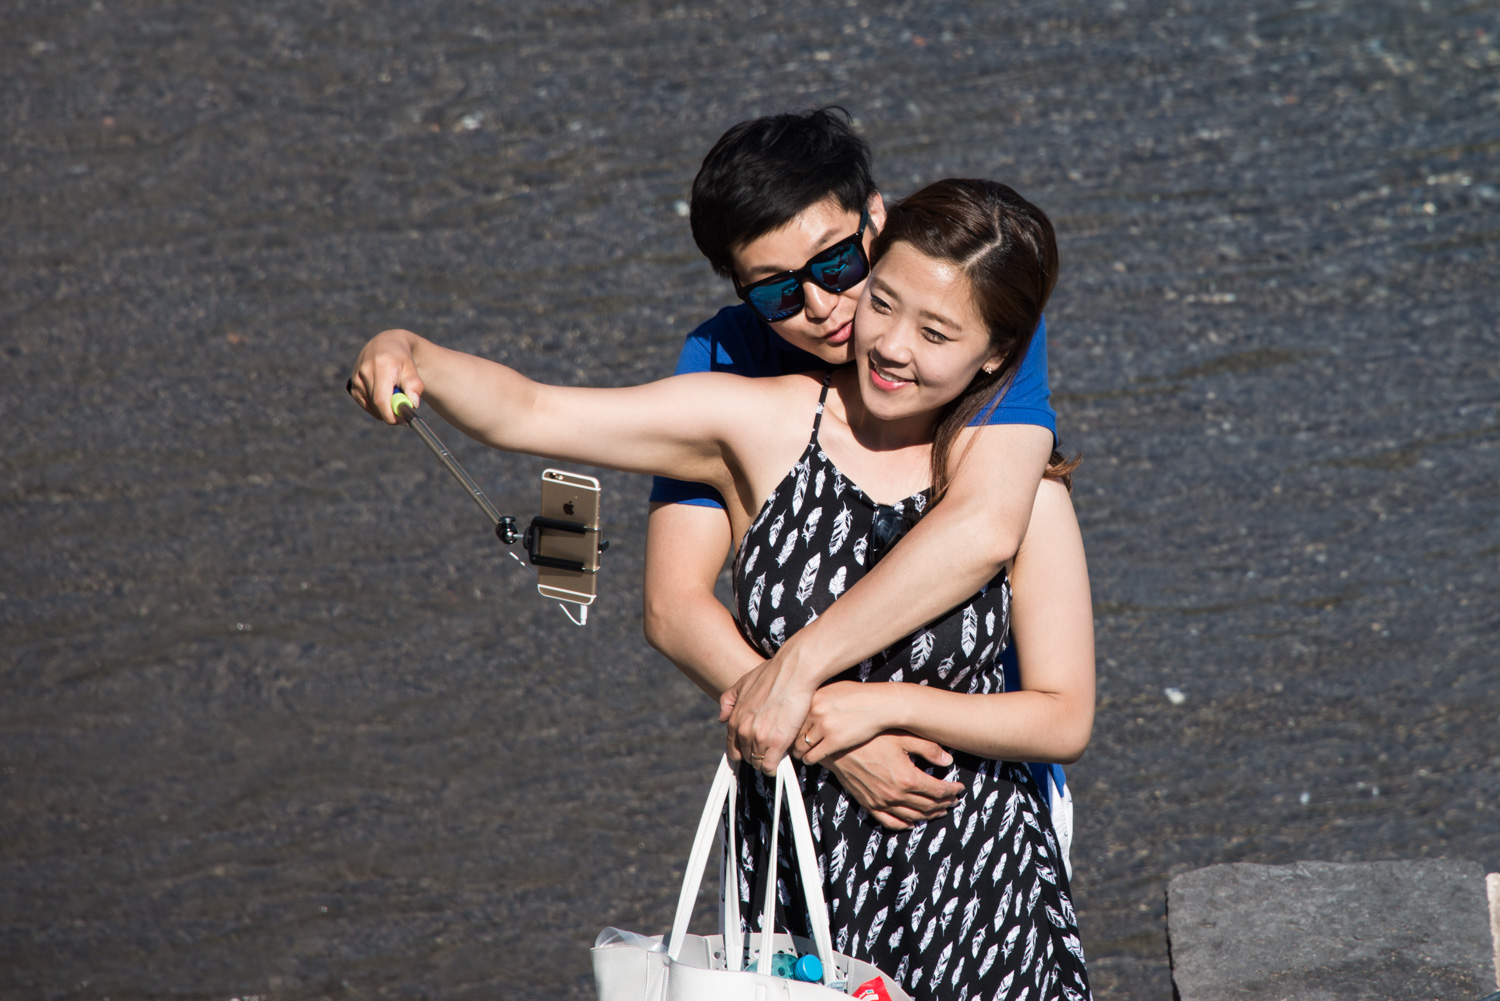 A couple taking a selfie on a beach in Italy